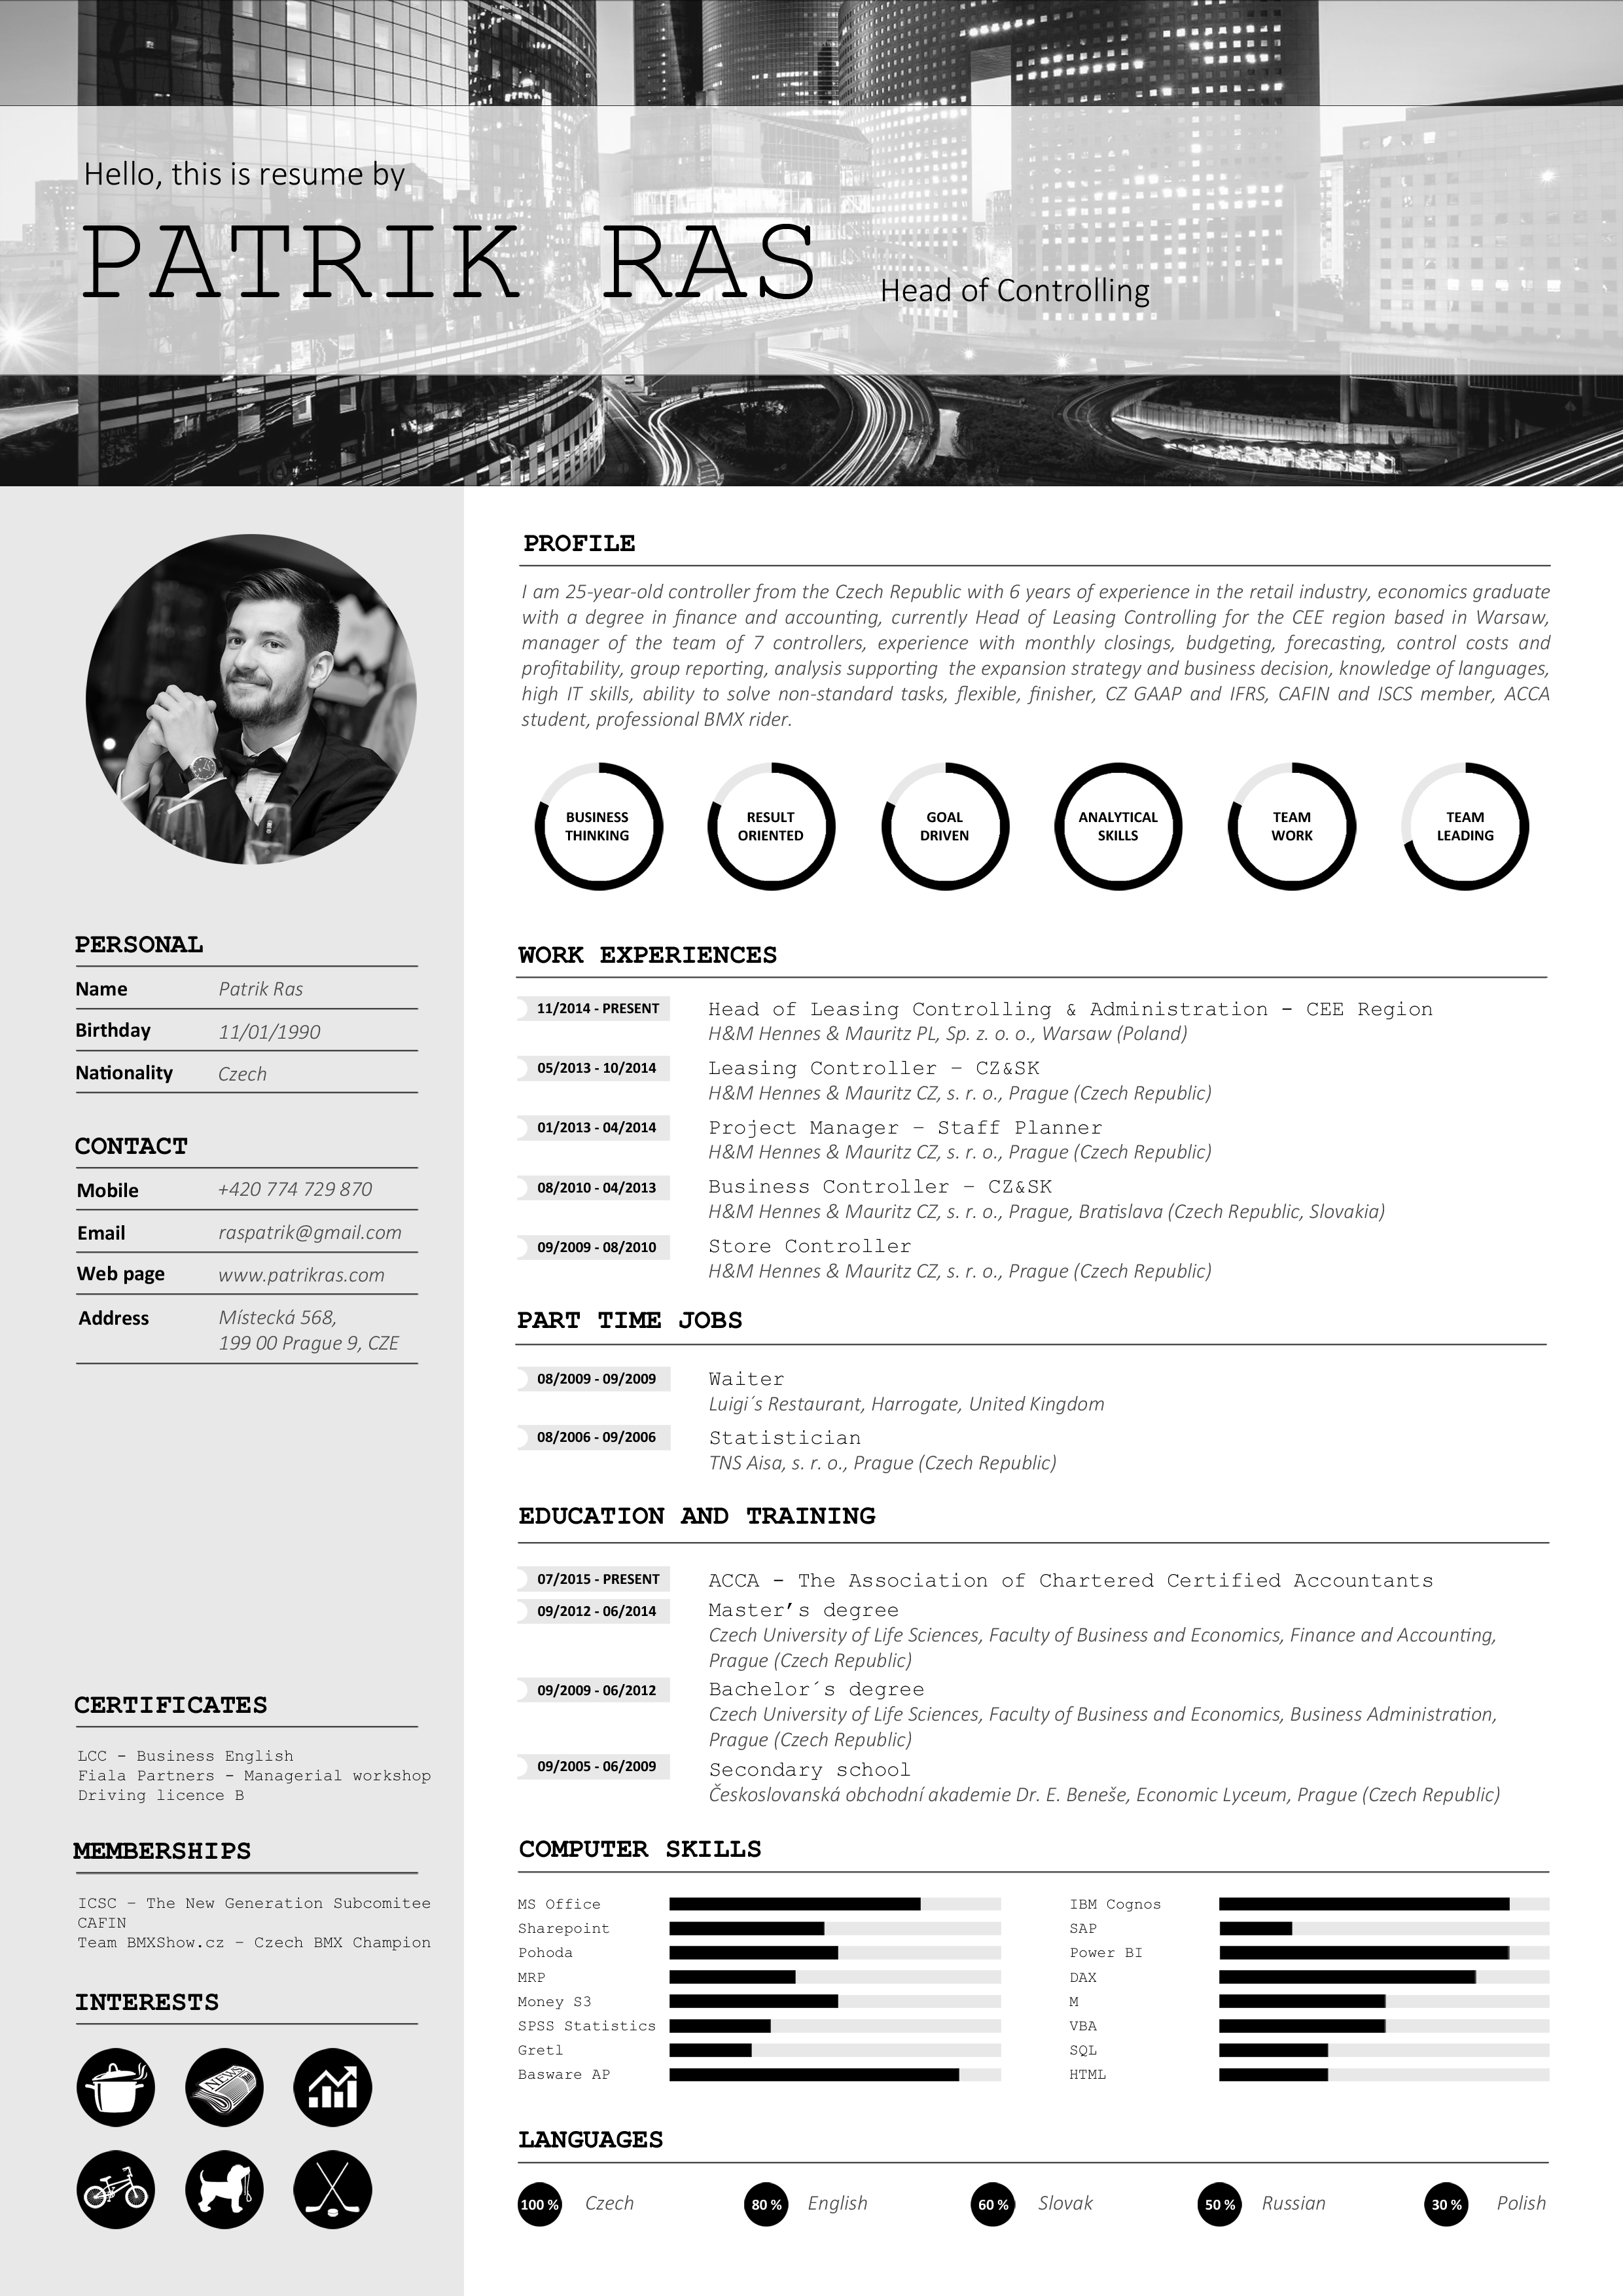 resume cv template graphics blackandwhite bw icons icongraphic business work job interview